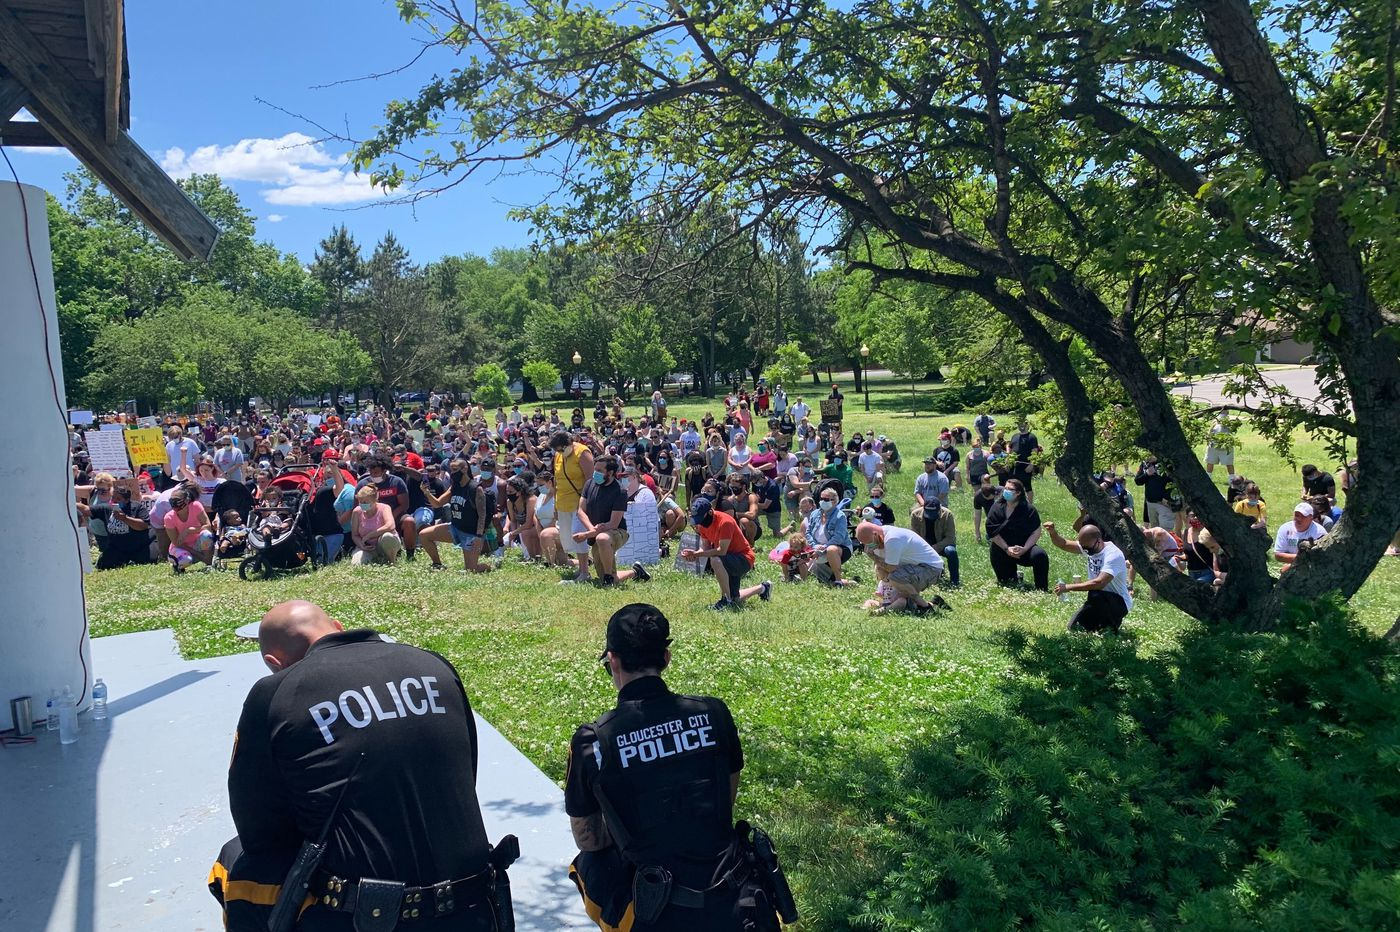 'This town is changing': Gloucester City holds a Black Lives Matter protest march unlikely there years ago